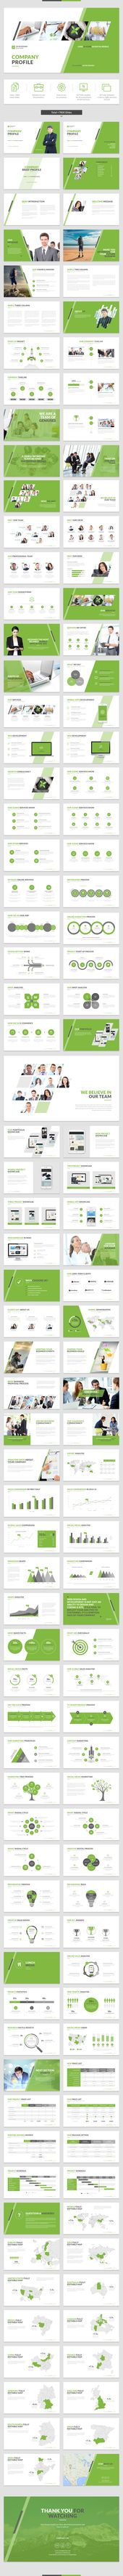 Company Profile PowerPoint Template Company profile, Profile and - company business profile